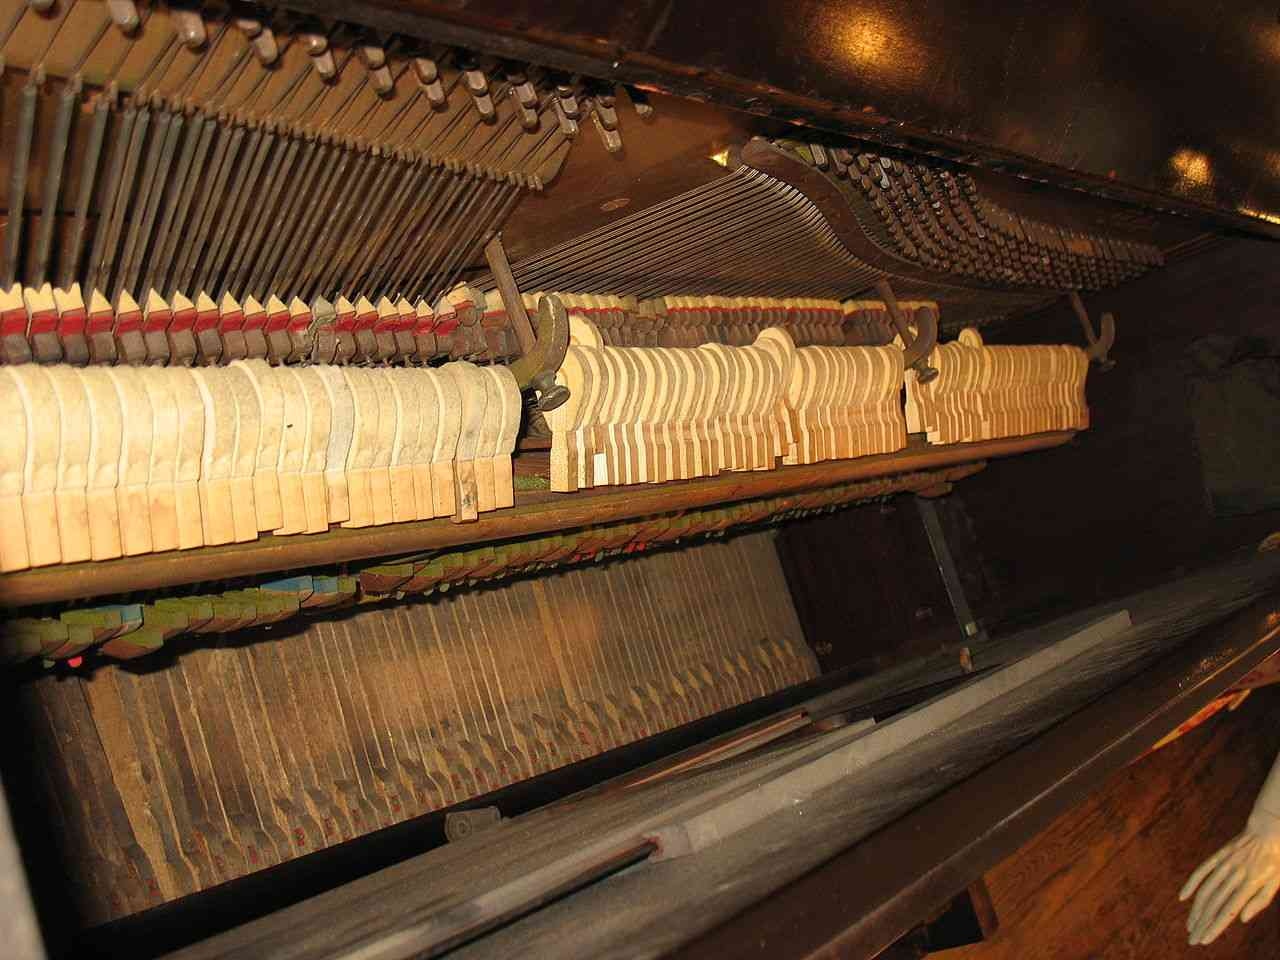 Cost to Restring a Piano - Why its Probably Not Worth It